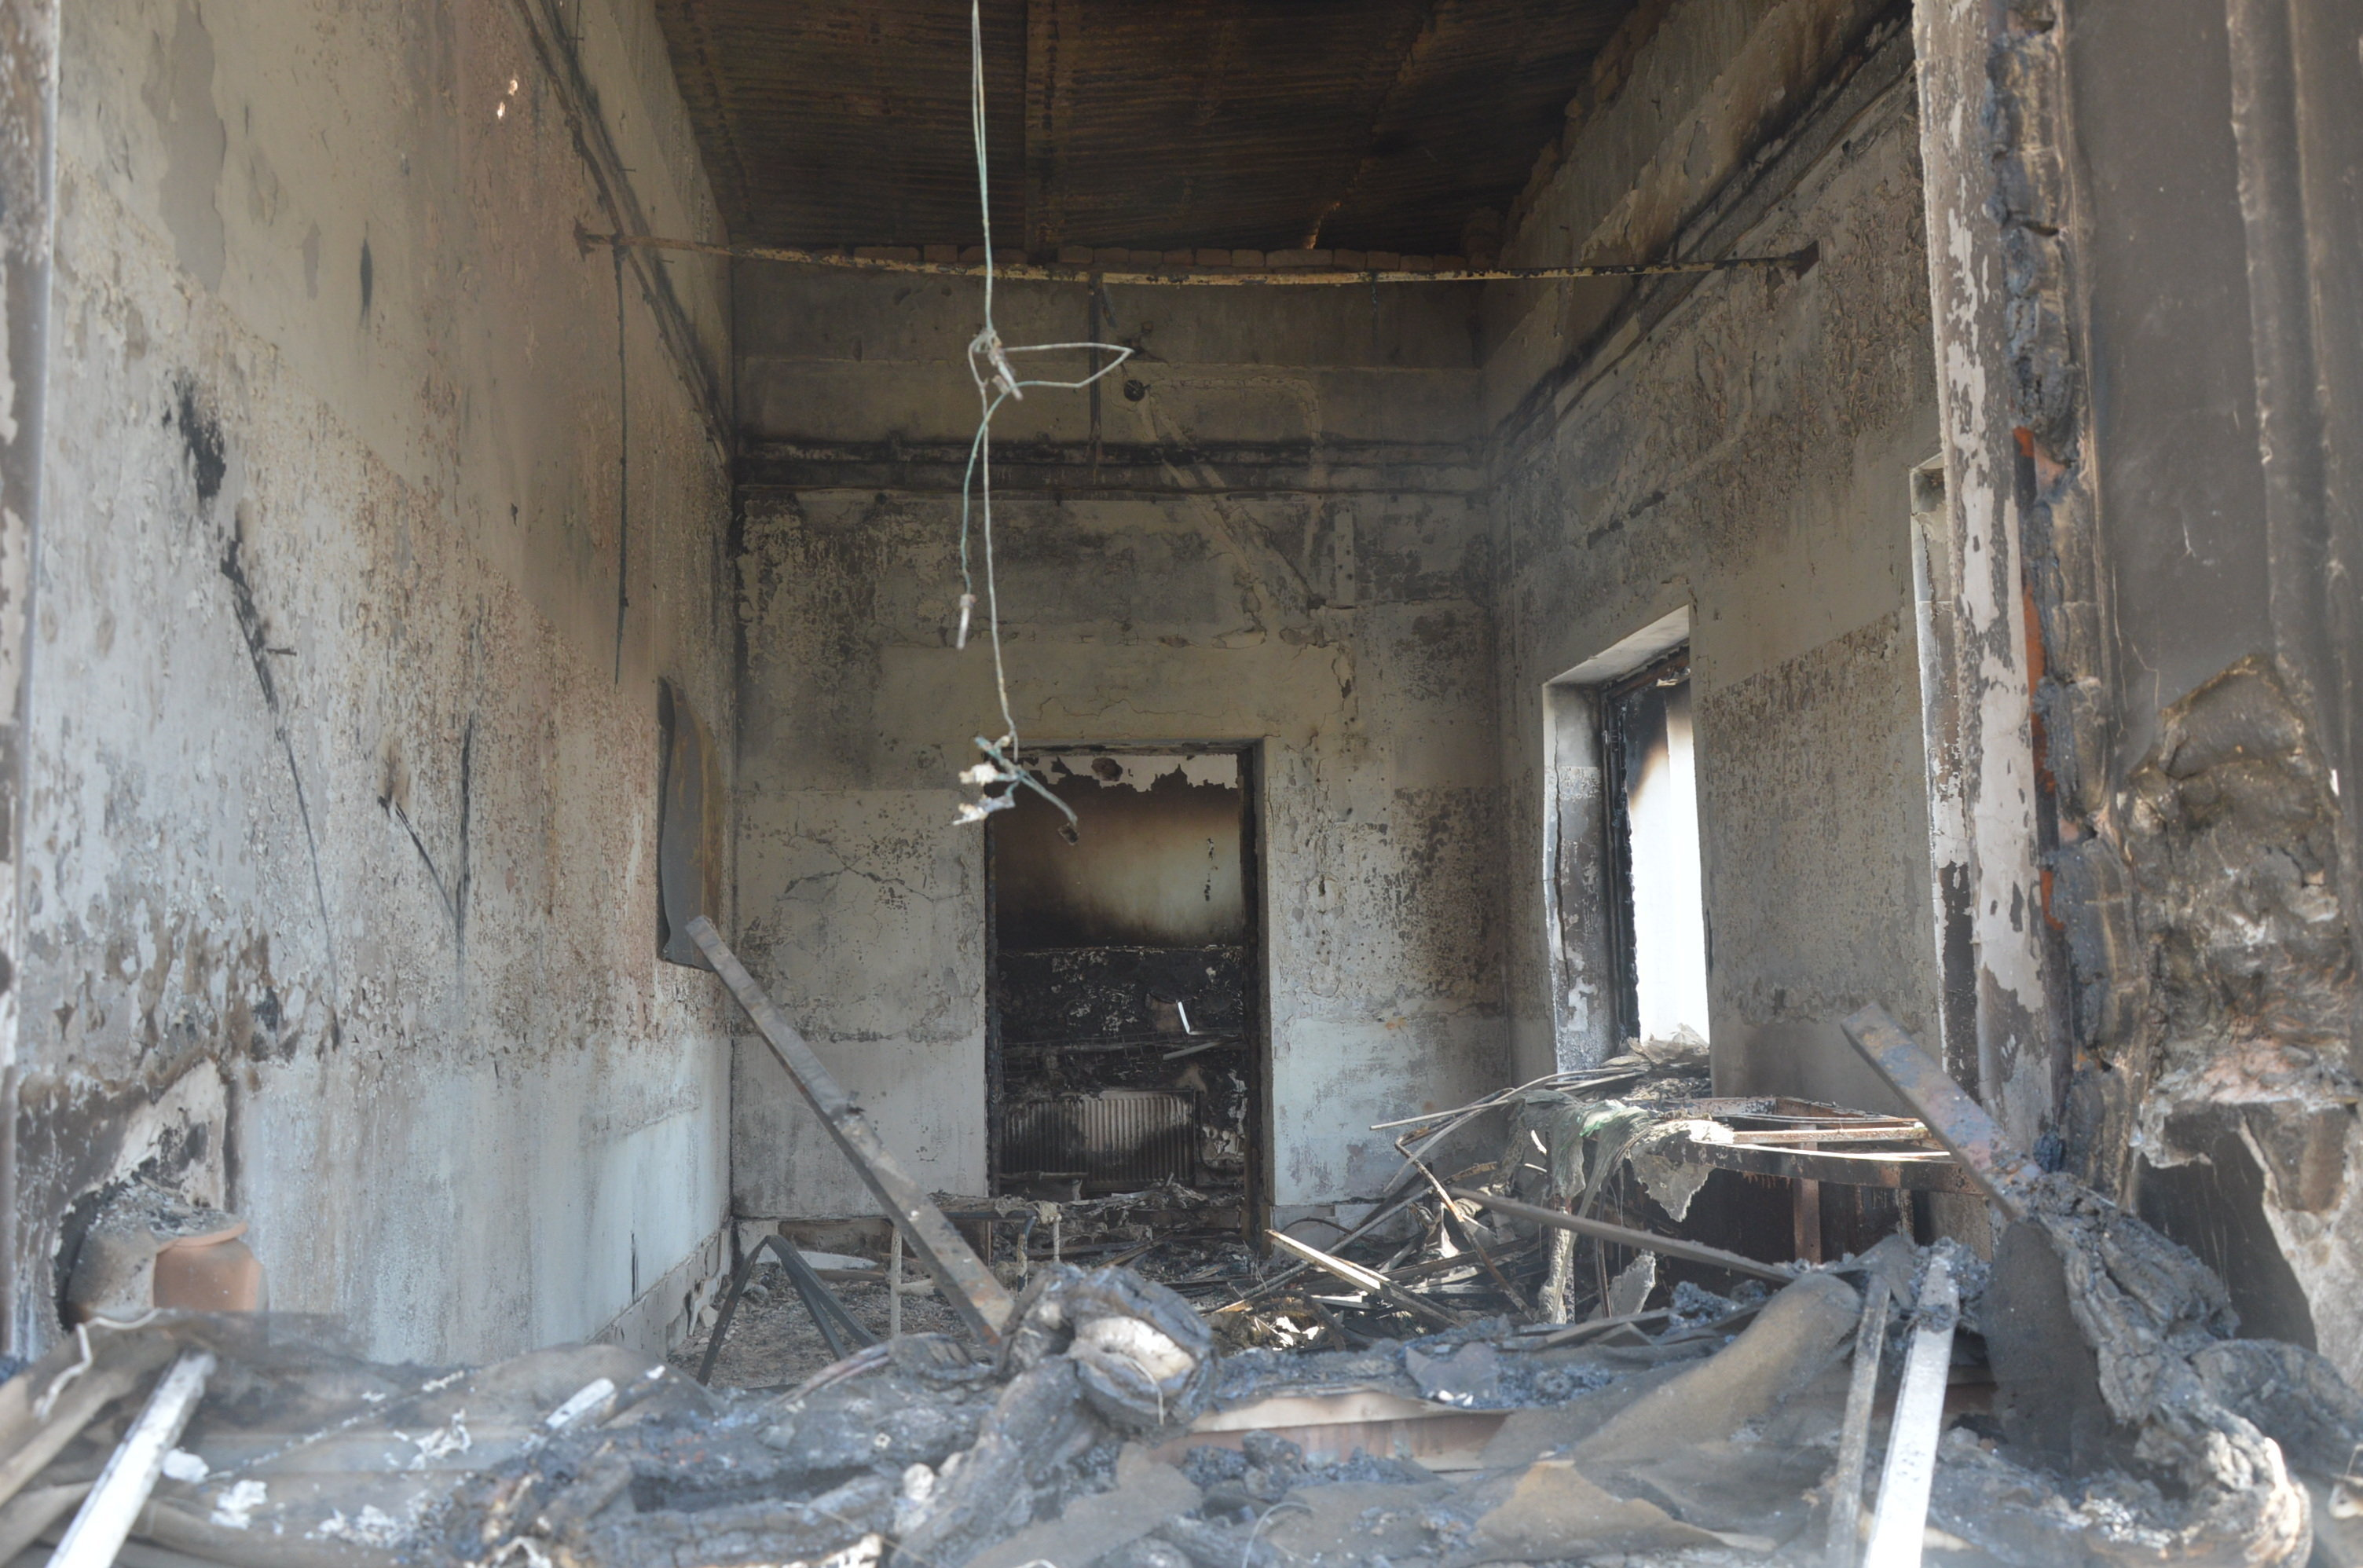 Tuesday, October 3, marked the second anniversary of the US strike on a hospital in northern Afghan city of Kunduz, which killed 42 civilians.